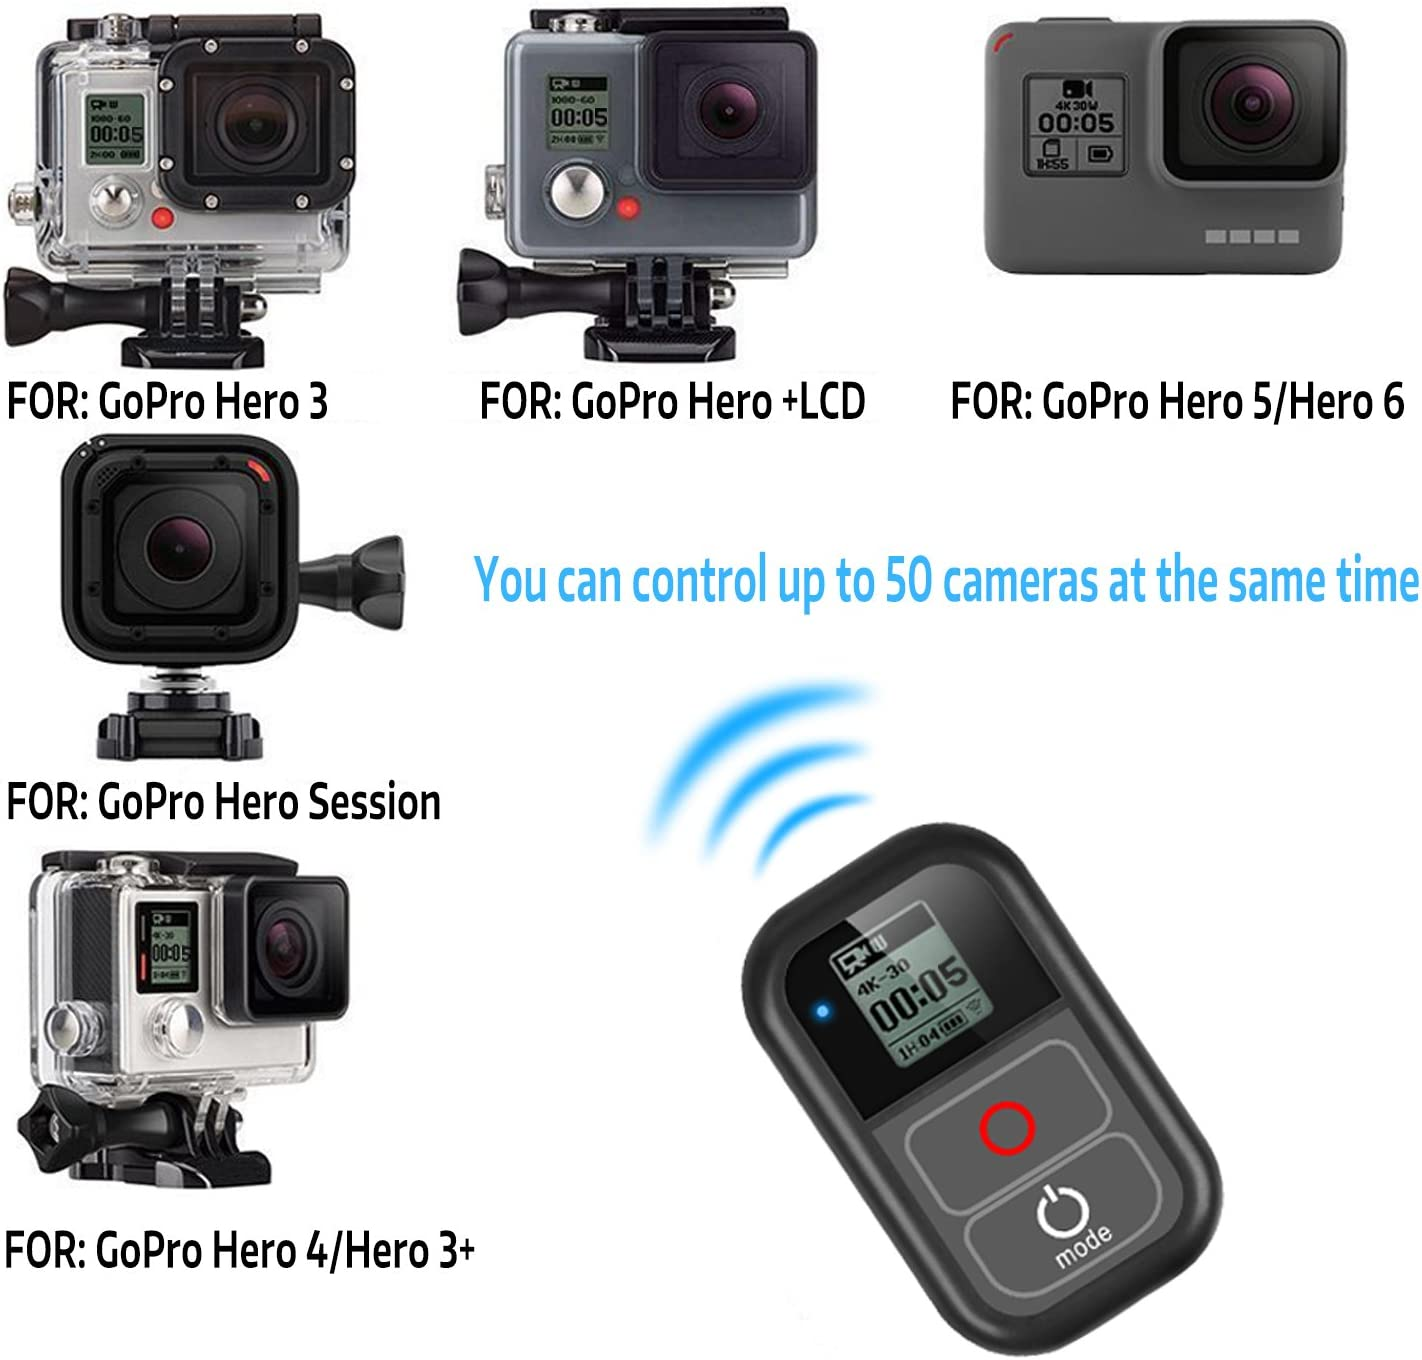 SHOOT Smart Remote Control(Waterproof 2m) for GoPro Hero 8,7 Black,6,5,4,3,3+,2,1, Hero + LCD, 4 Session, 5 Session,LCD Screen,Wi-Fi,Wirless,Built-in ...